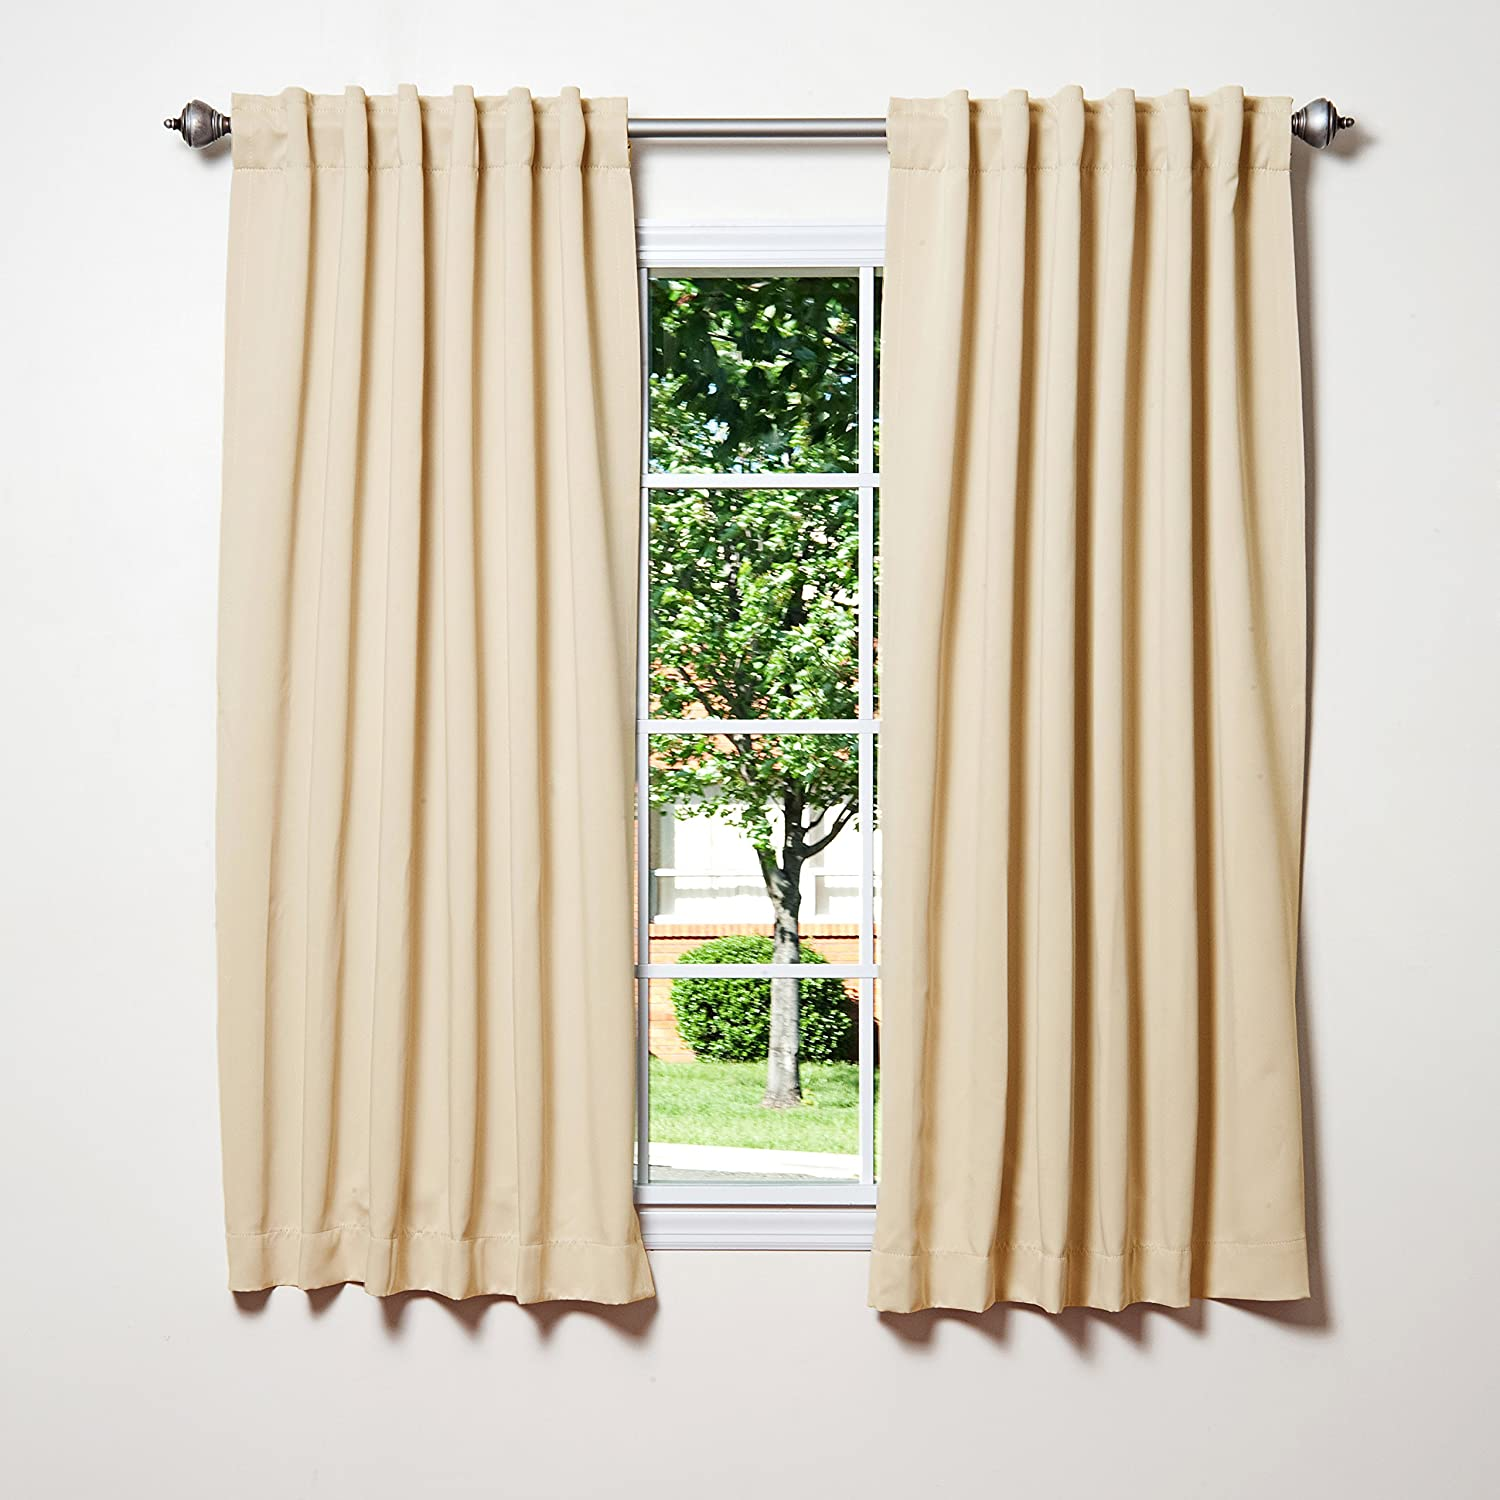 Insulated curtains - Amazon Com Best Home Fashion Thermal Insulated Blackout Curtains Back Tab Rod Pocket Beige 52 W X 63 L Set Of 2 Panels Home Kitchen